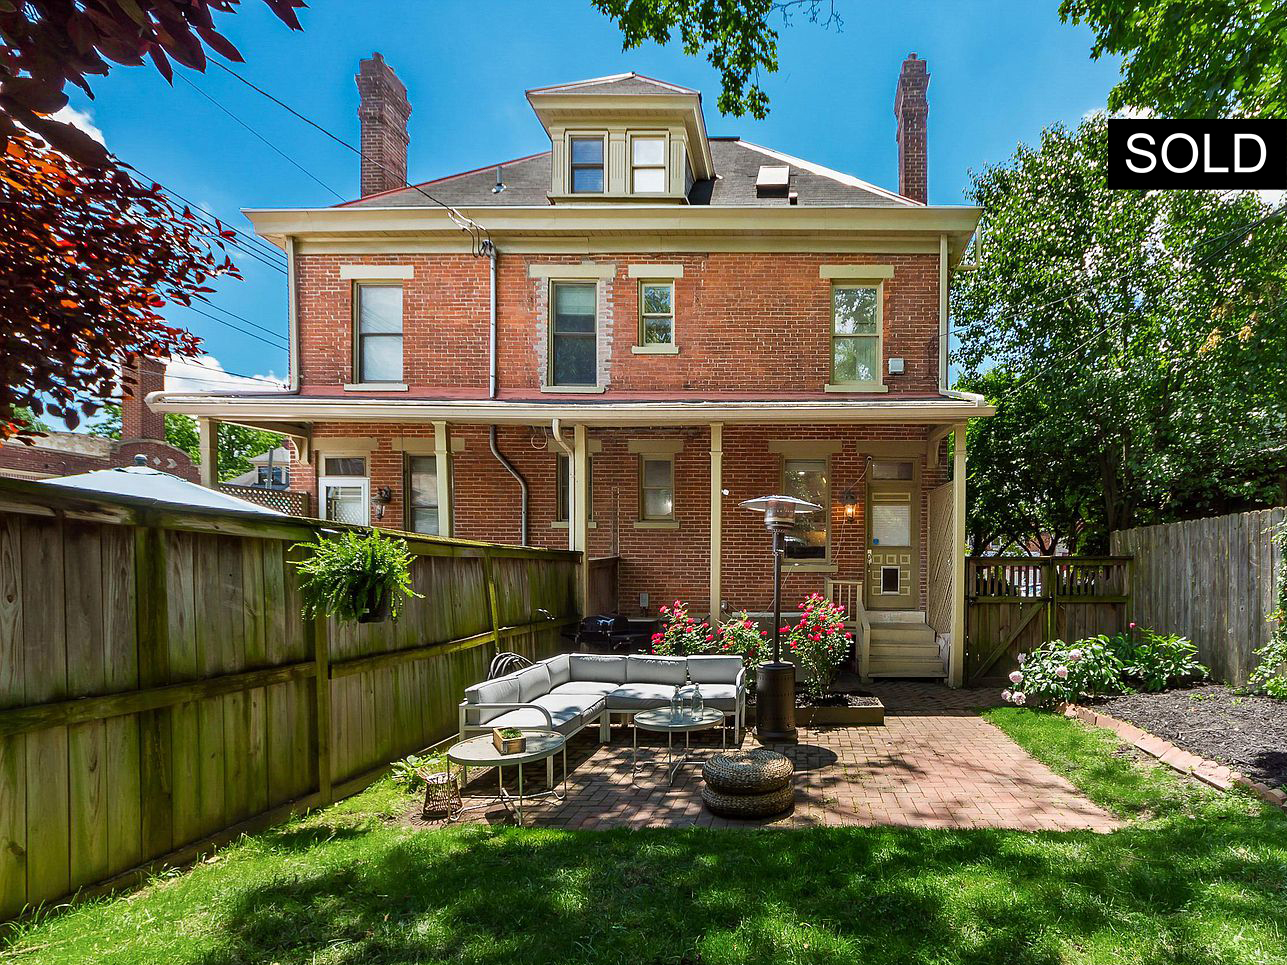 198 Thurman Ave - $375,000